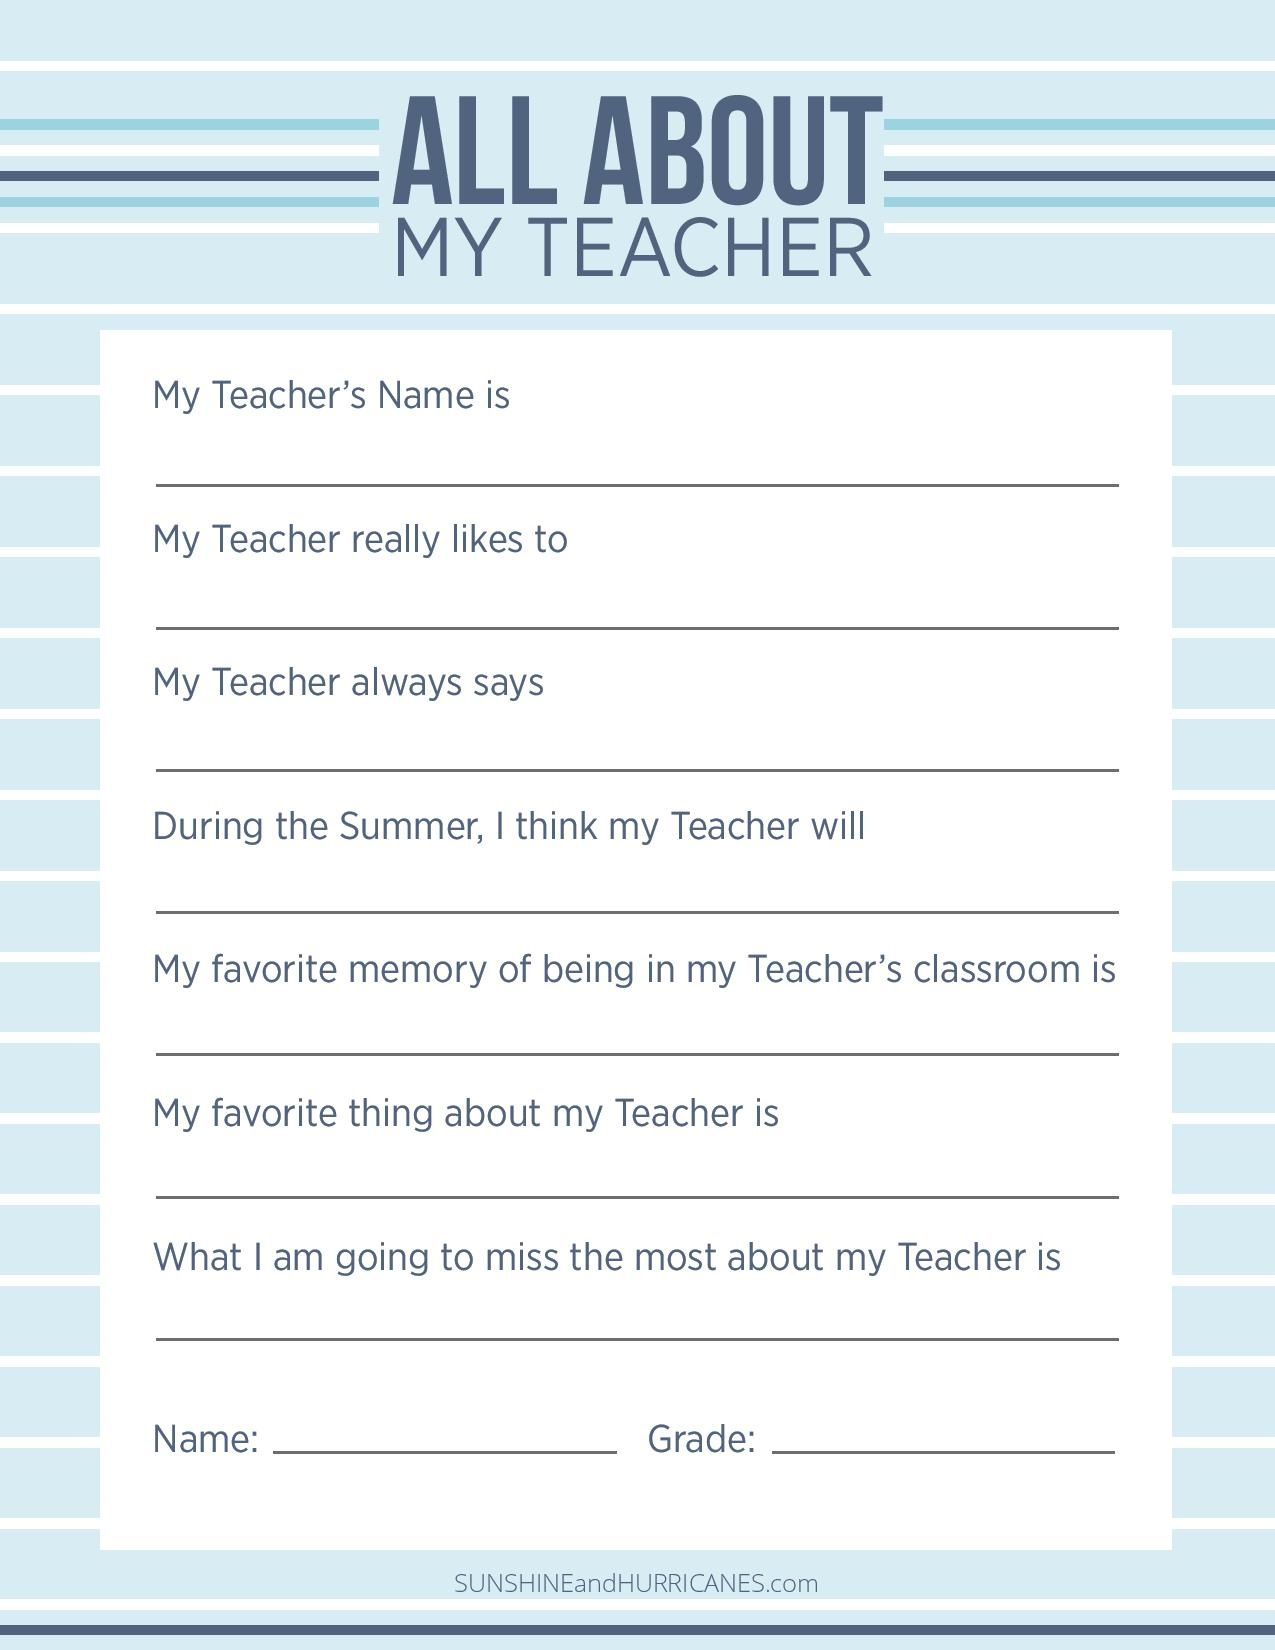 Teacher Appreciation Week Questionnaire - A Personalized Teacher Gift - Make A Printable Survey Free